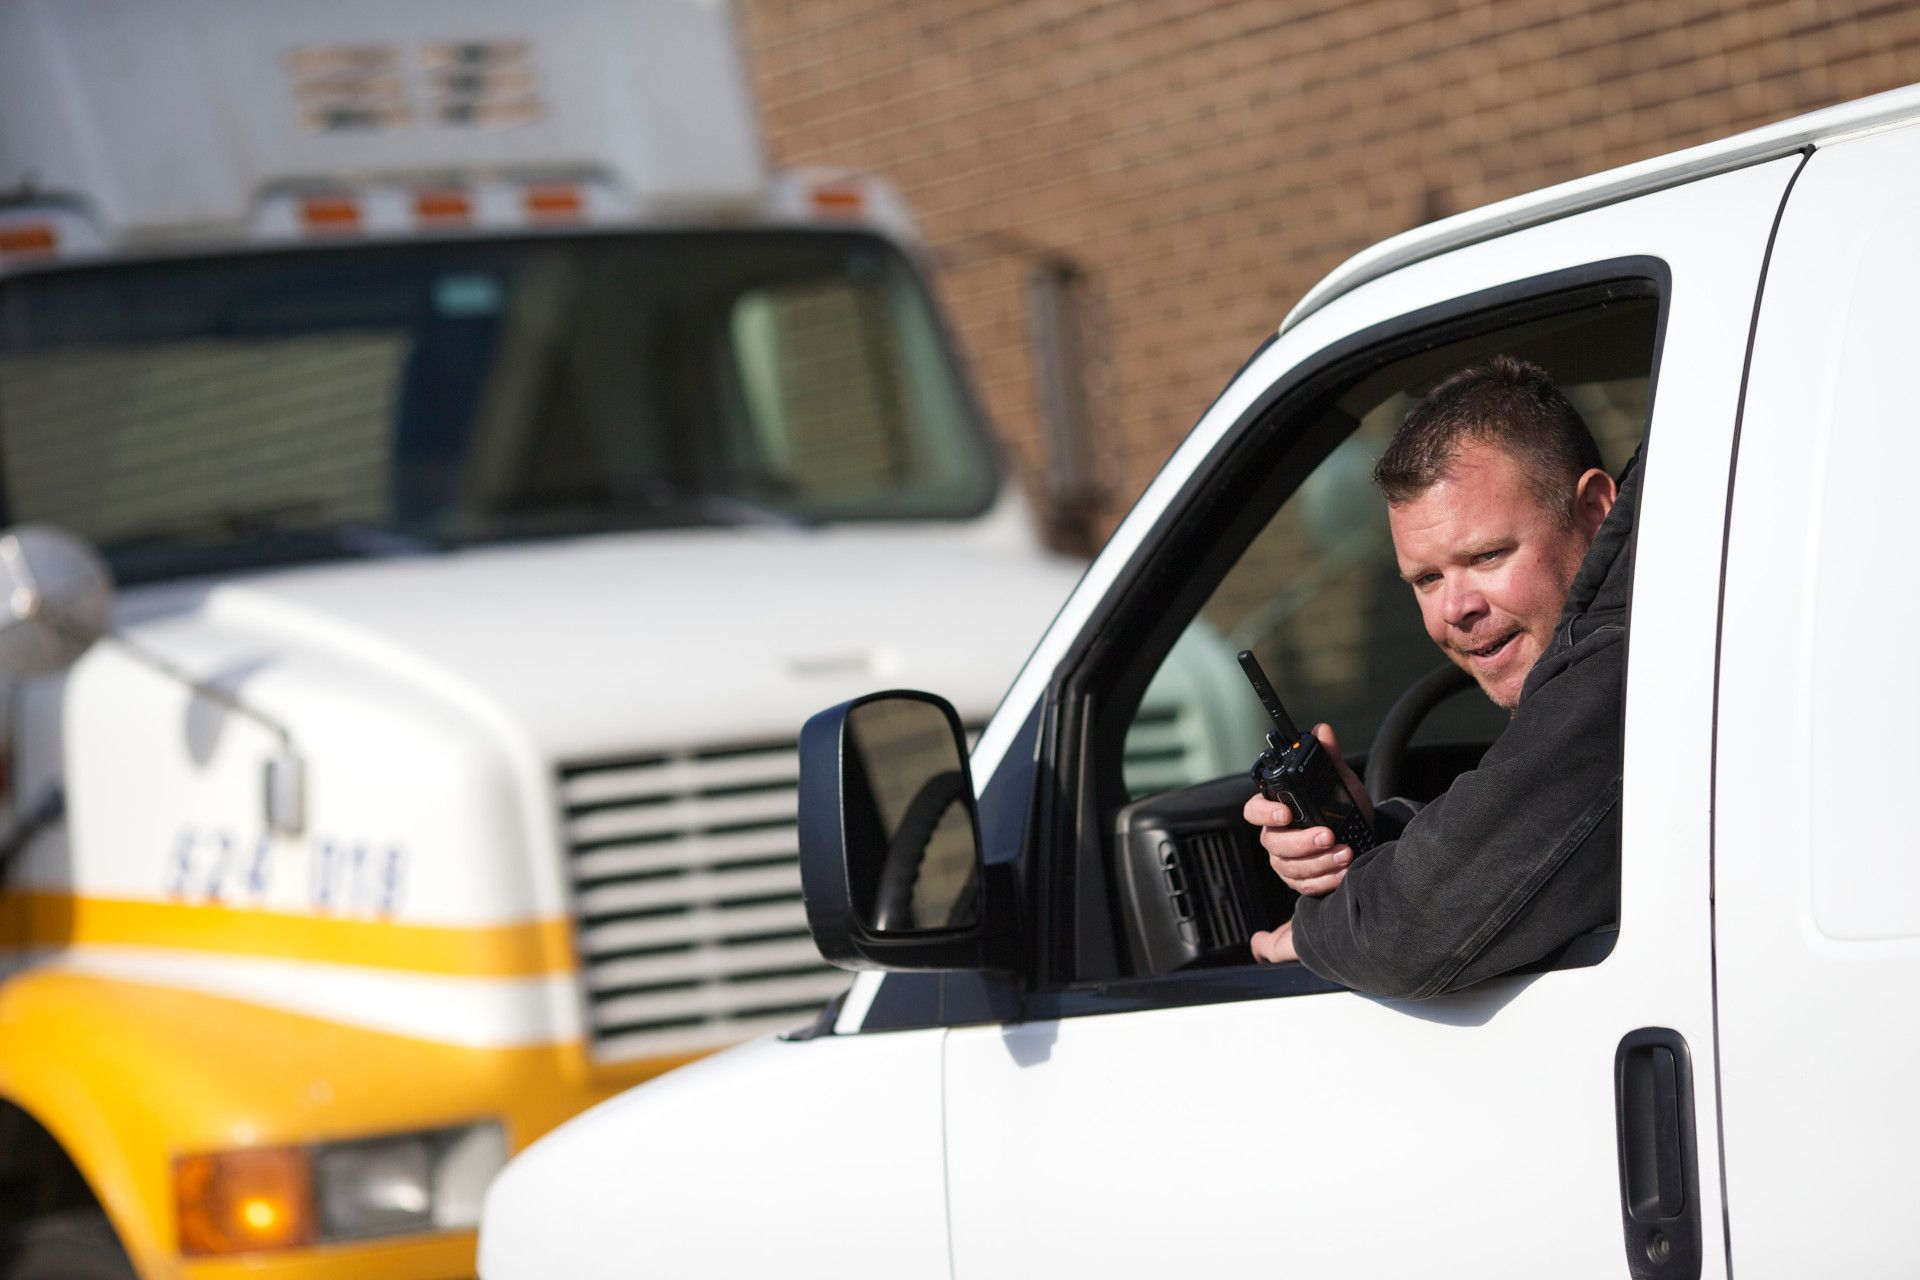 Mobile radio provides fast, reliable communications for fleet vehicles